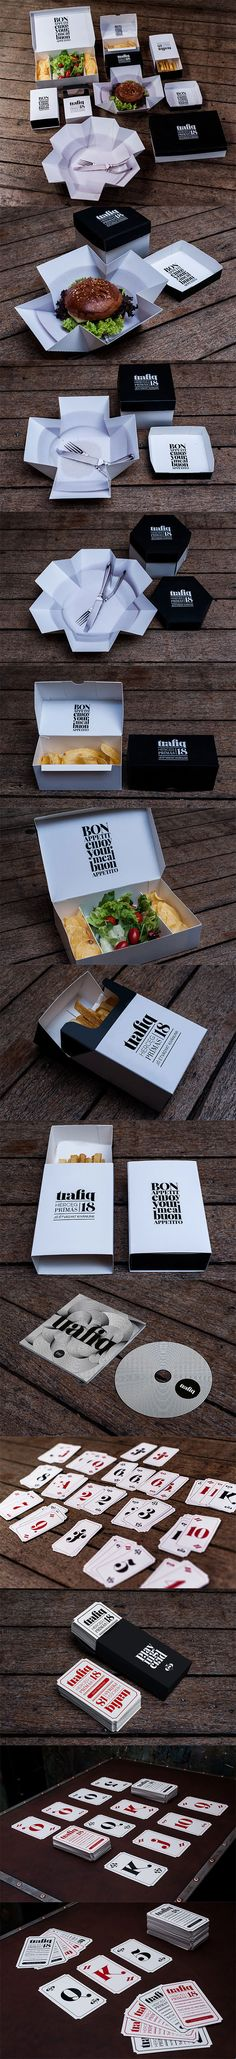 Trafiq #packaging #branding #marketing PD